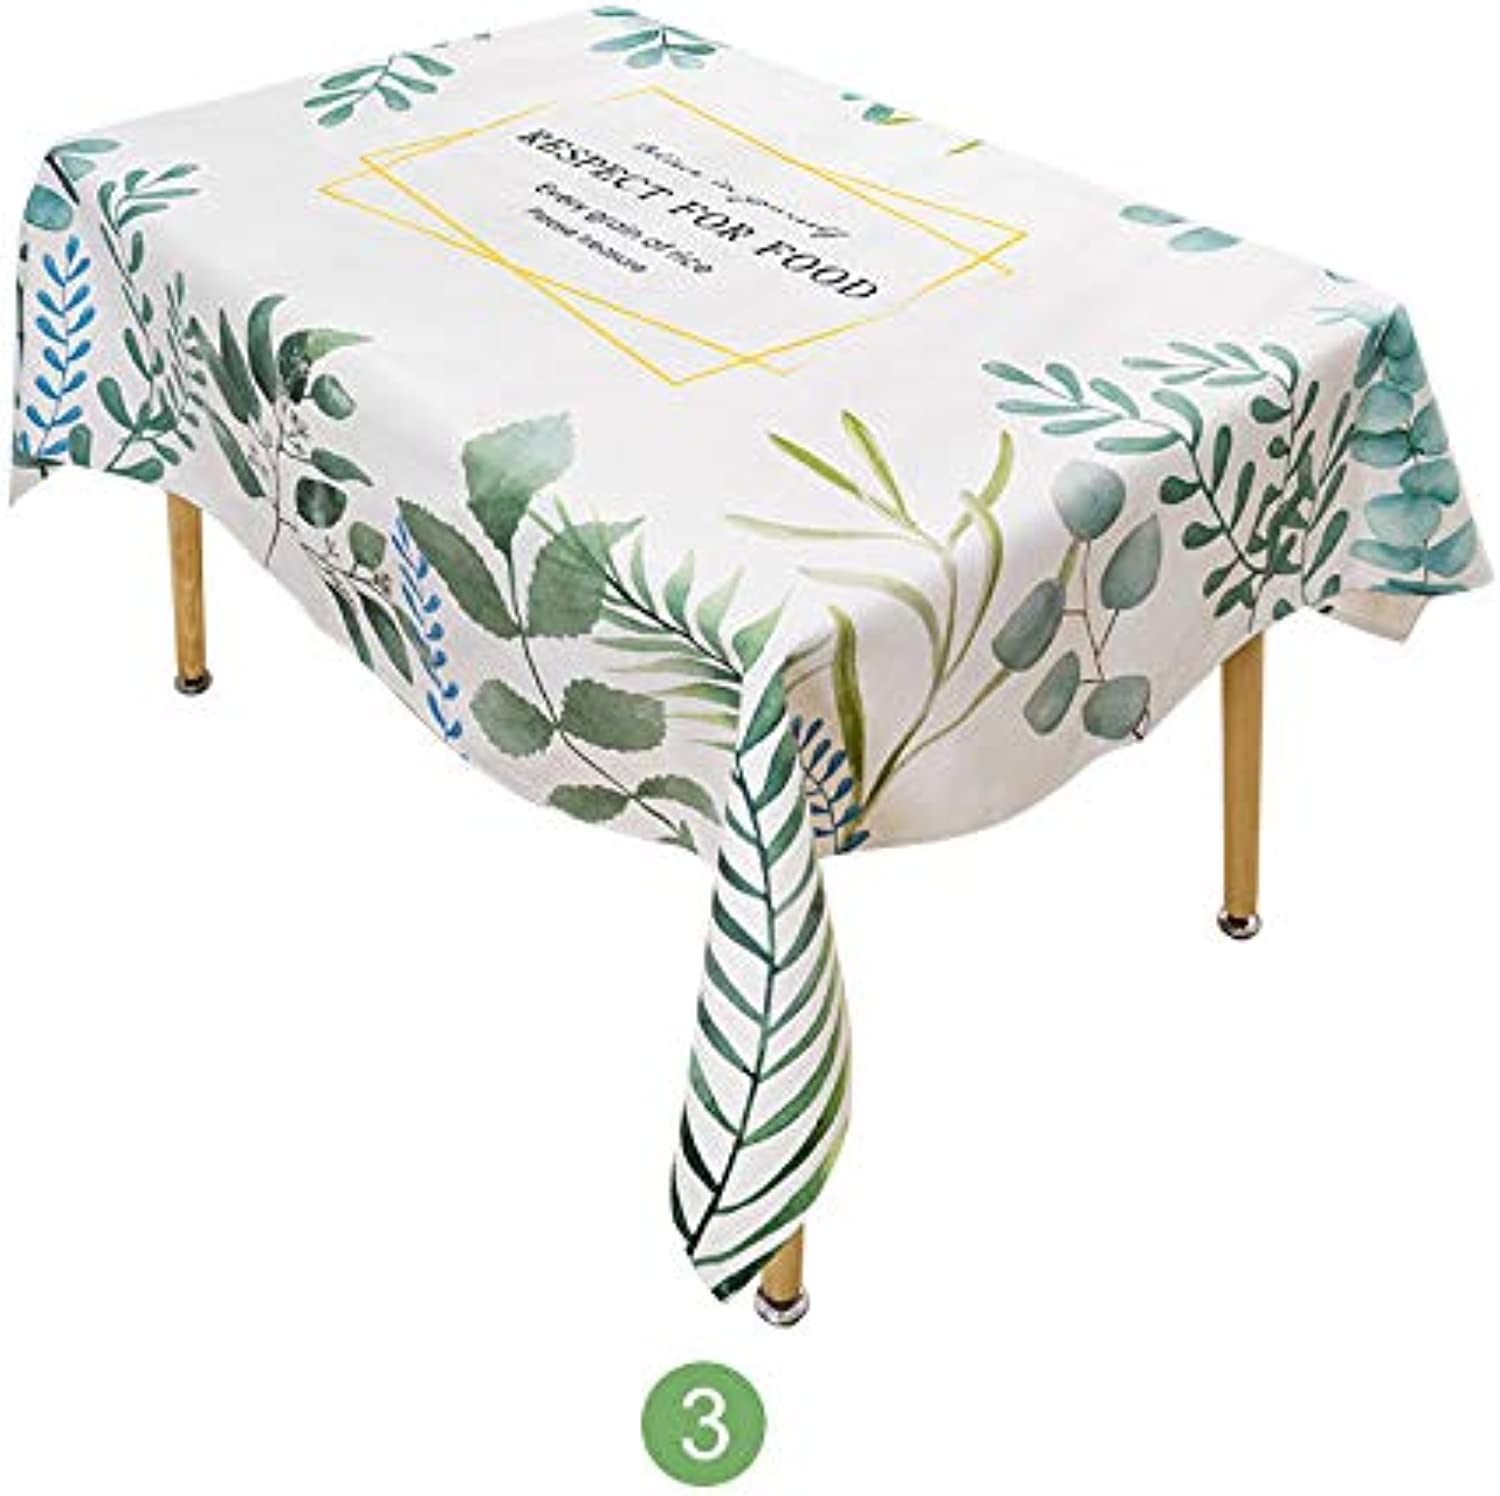 Creek Ywh Nordic ins wind bamboo leaves tablecloth cotton and linen rectangular round table home table desk coffee table cloth, cotton and linen 3 ,200x140cm